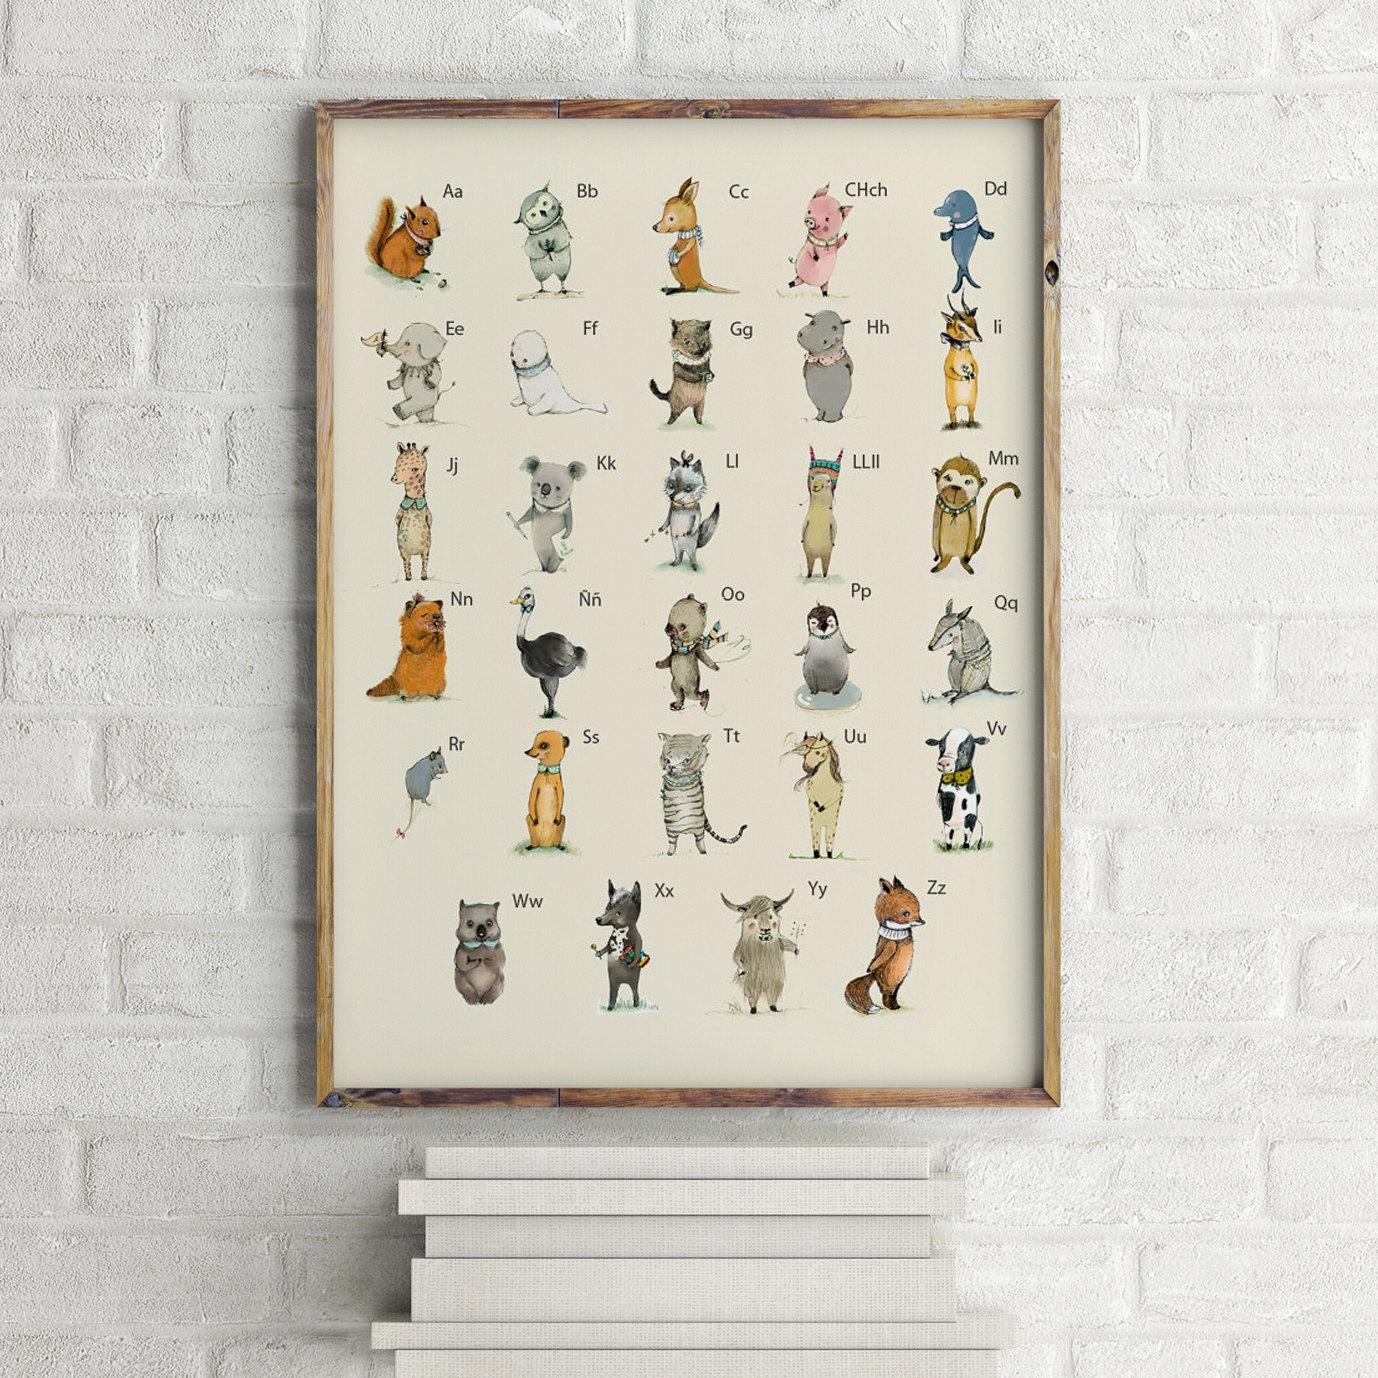 Spanish Abc Animals Alphabet Poster Learning A3 Size Throughout Italian Nursery Wall Art (Image 11 of 20)